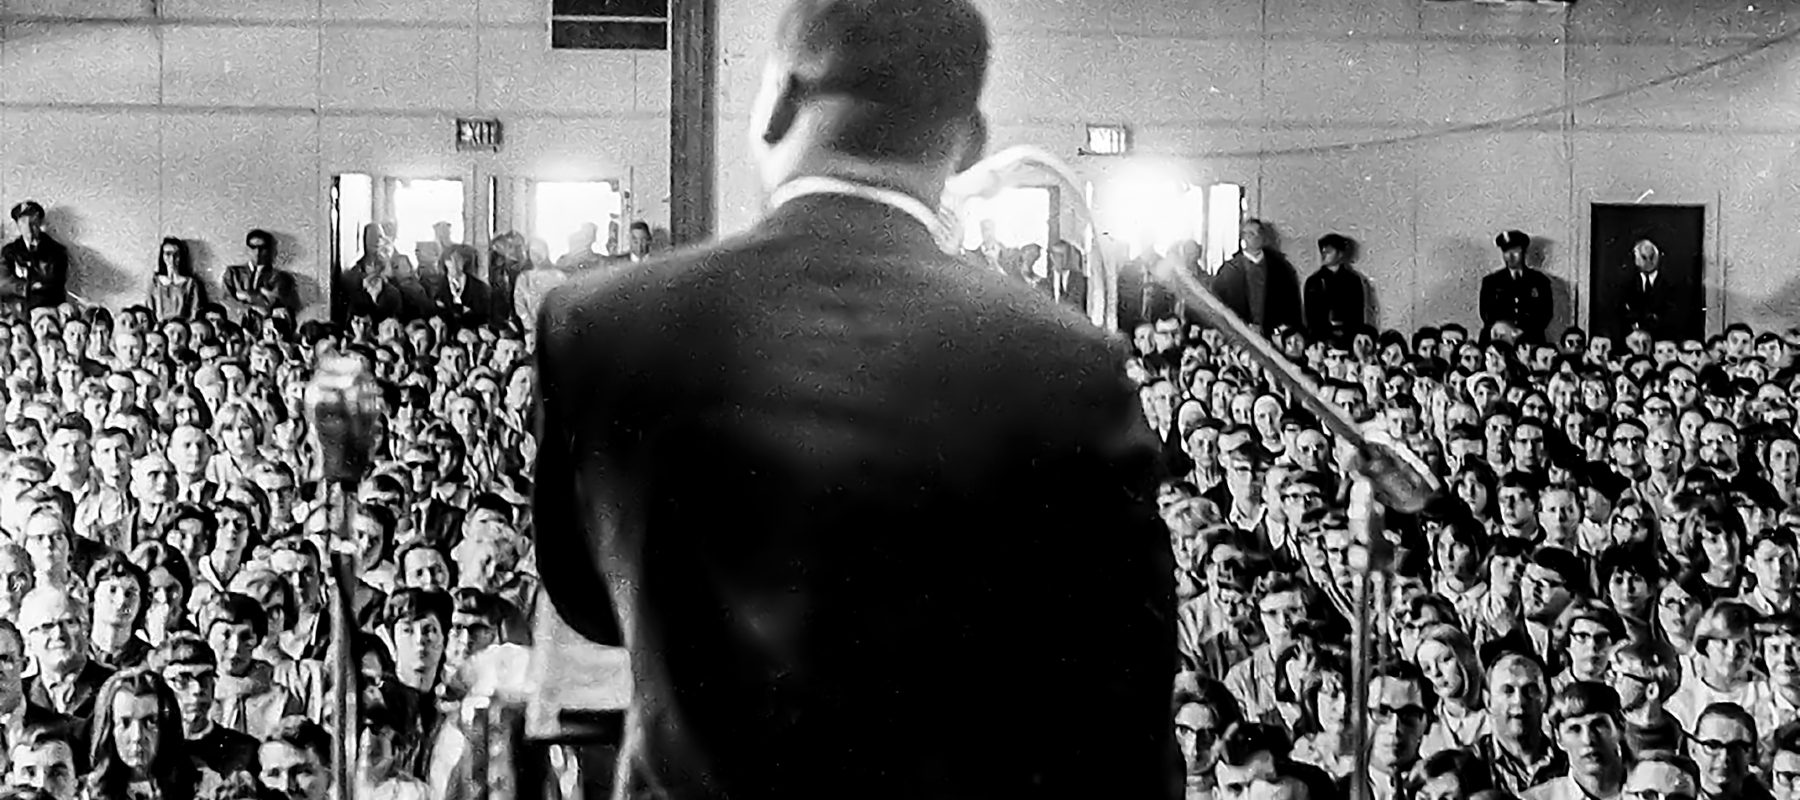 Remembering Martin Luther King's Impact on the Fight for Civil Rights Across Wisconsin On Monday, Jan. 18, the nation will pause to remember the legacy of Dr. Martin Luther King Jr. and the continuing struggle for equality. The Civil Rights icon would have turned 92 this year.